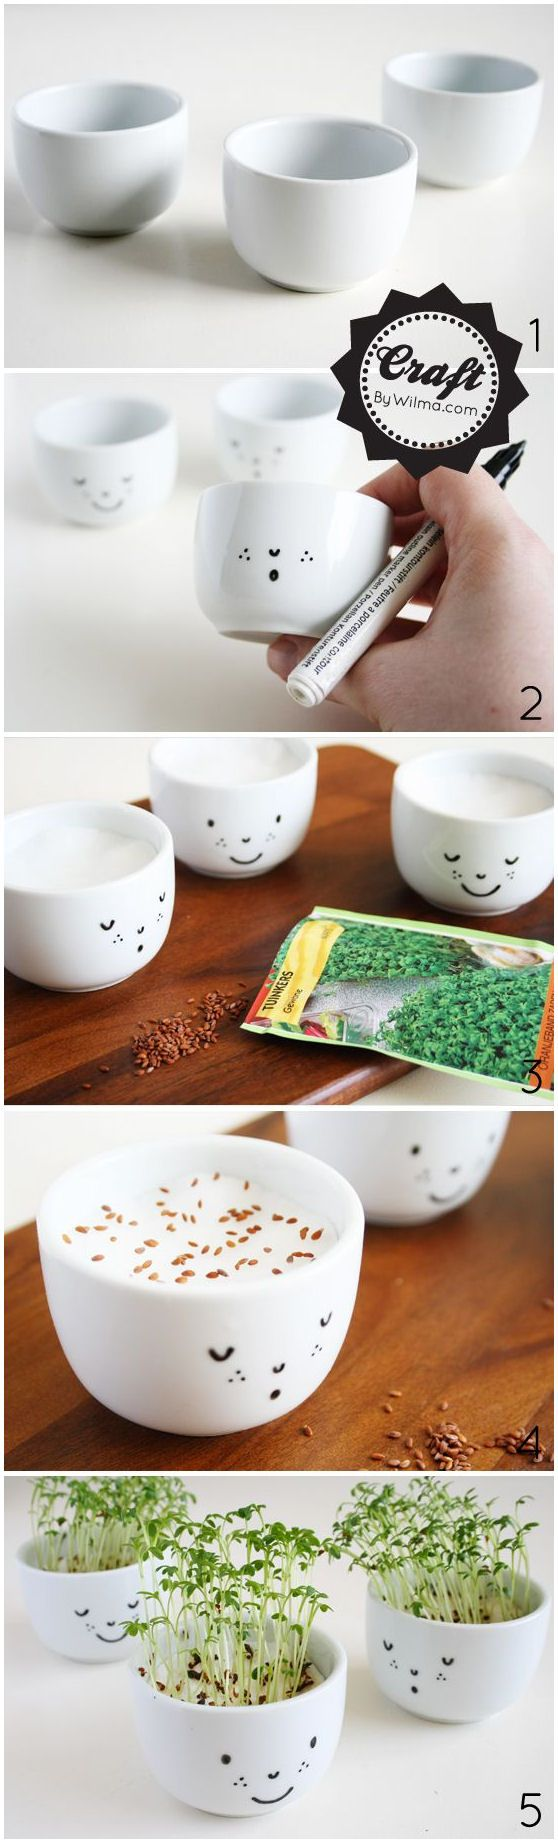 DIY: Grow Watercress in cups with a face!